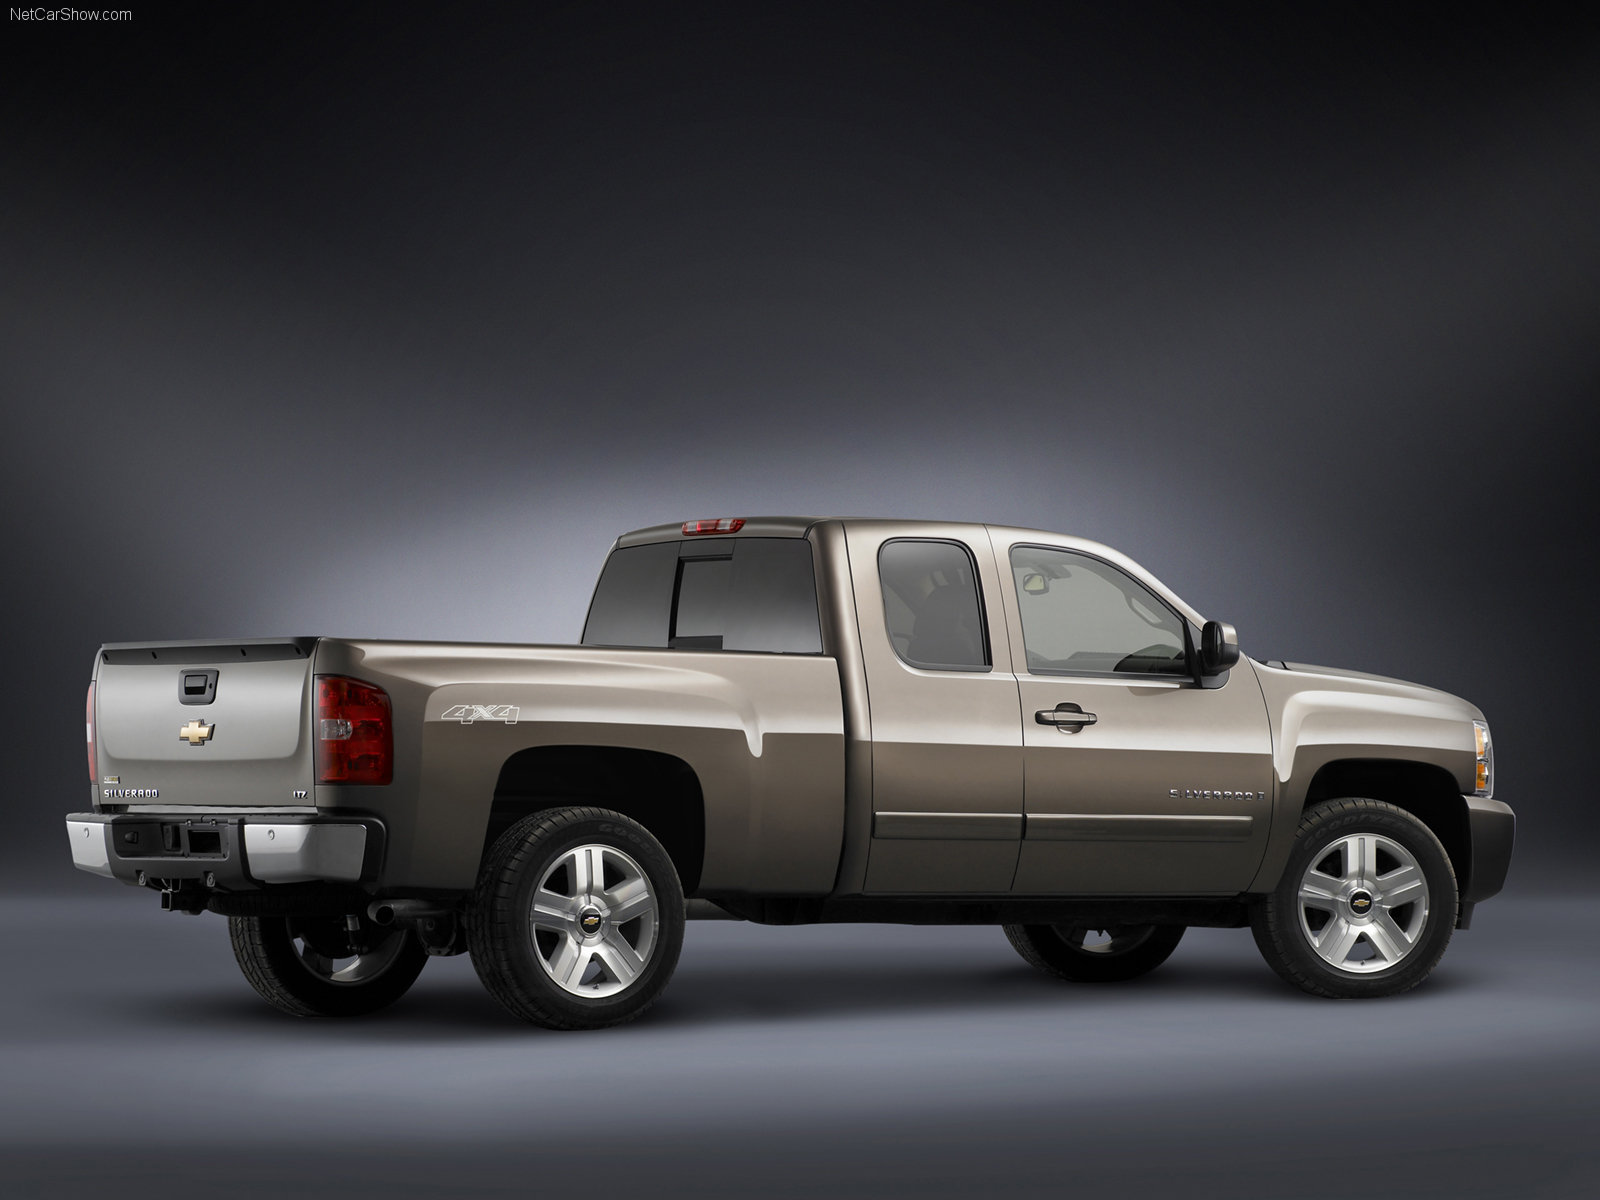 Chevrolet Silverado Extended Cab photo 37527